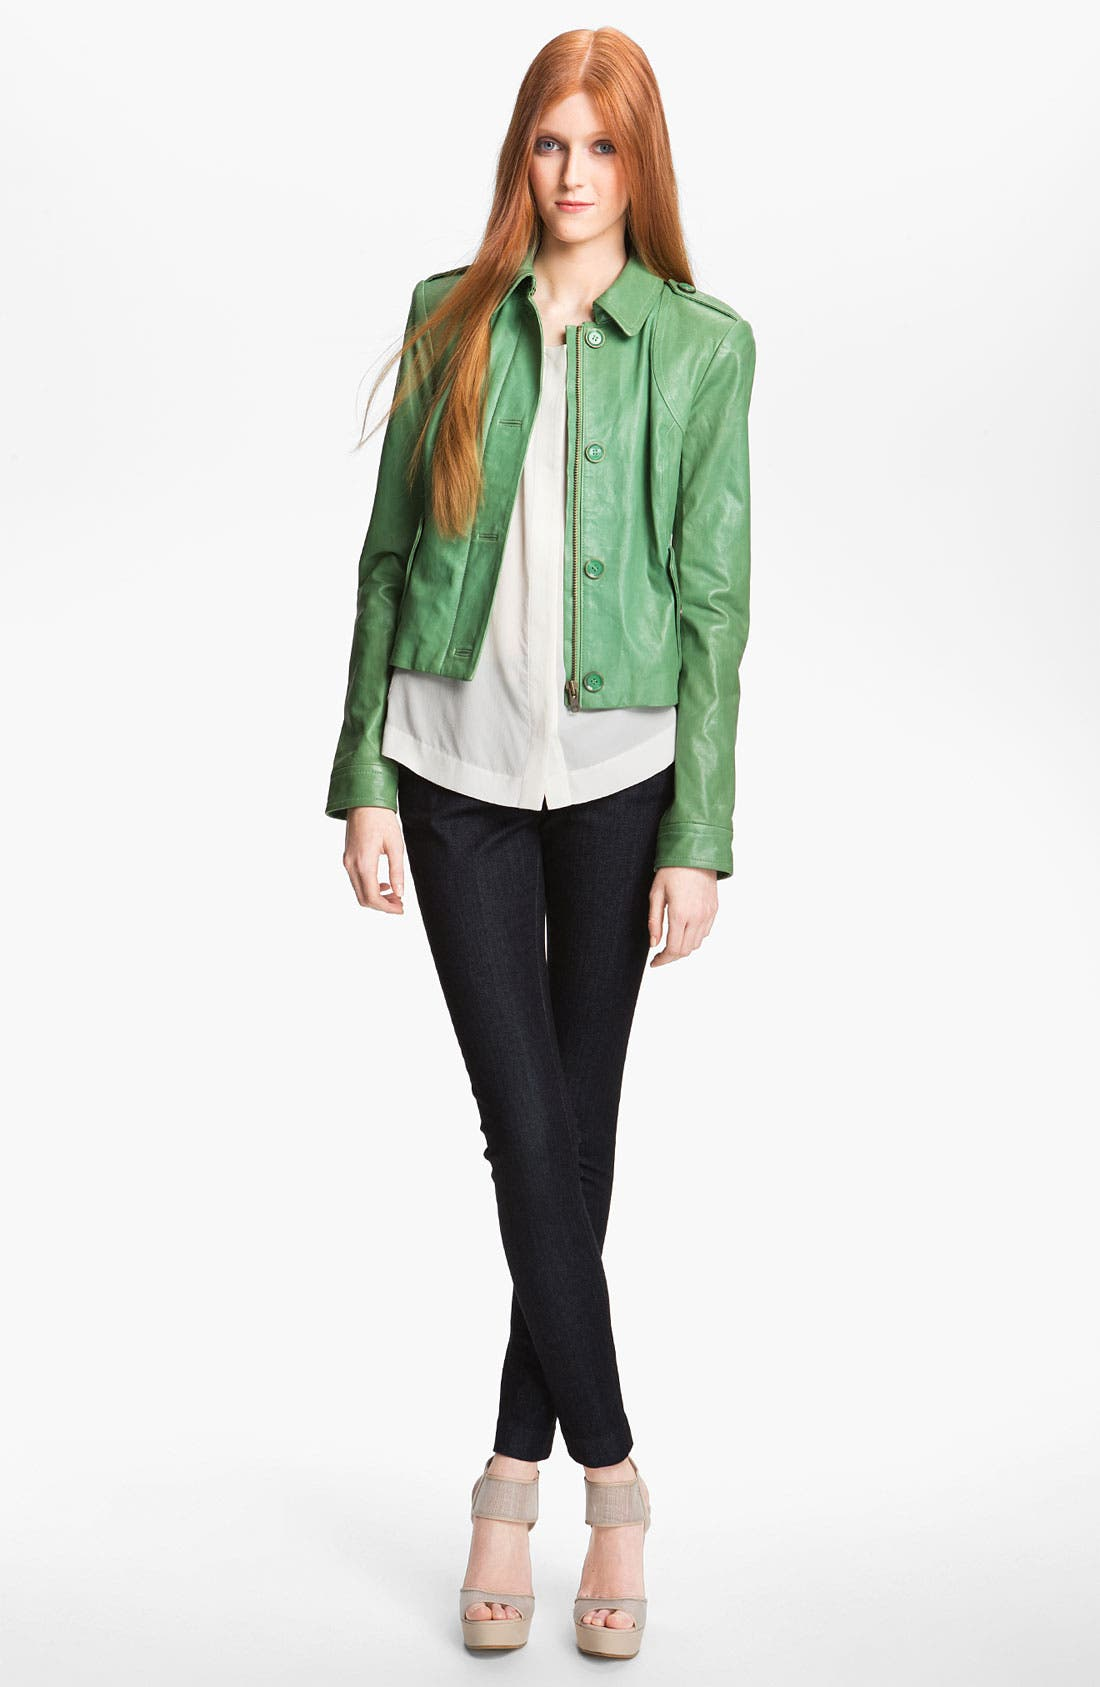 Alternate Image 1 Selected - Rachel Zoe 'Celia' Dual Closure Leather Jacket